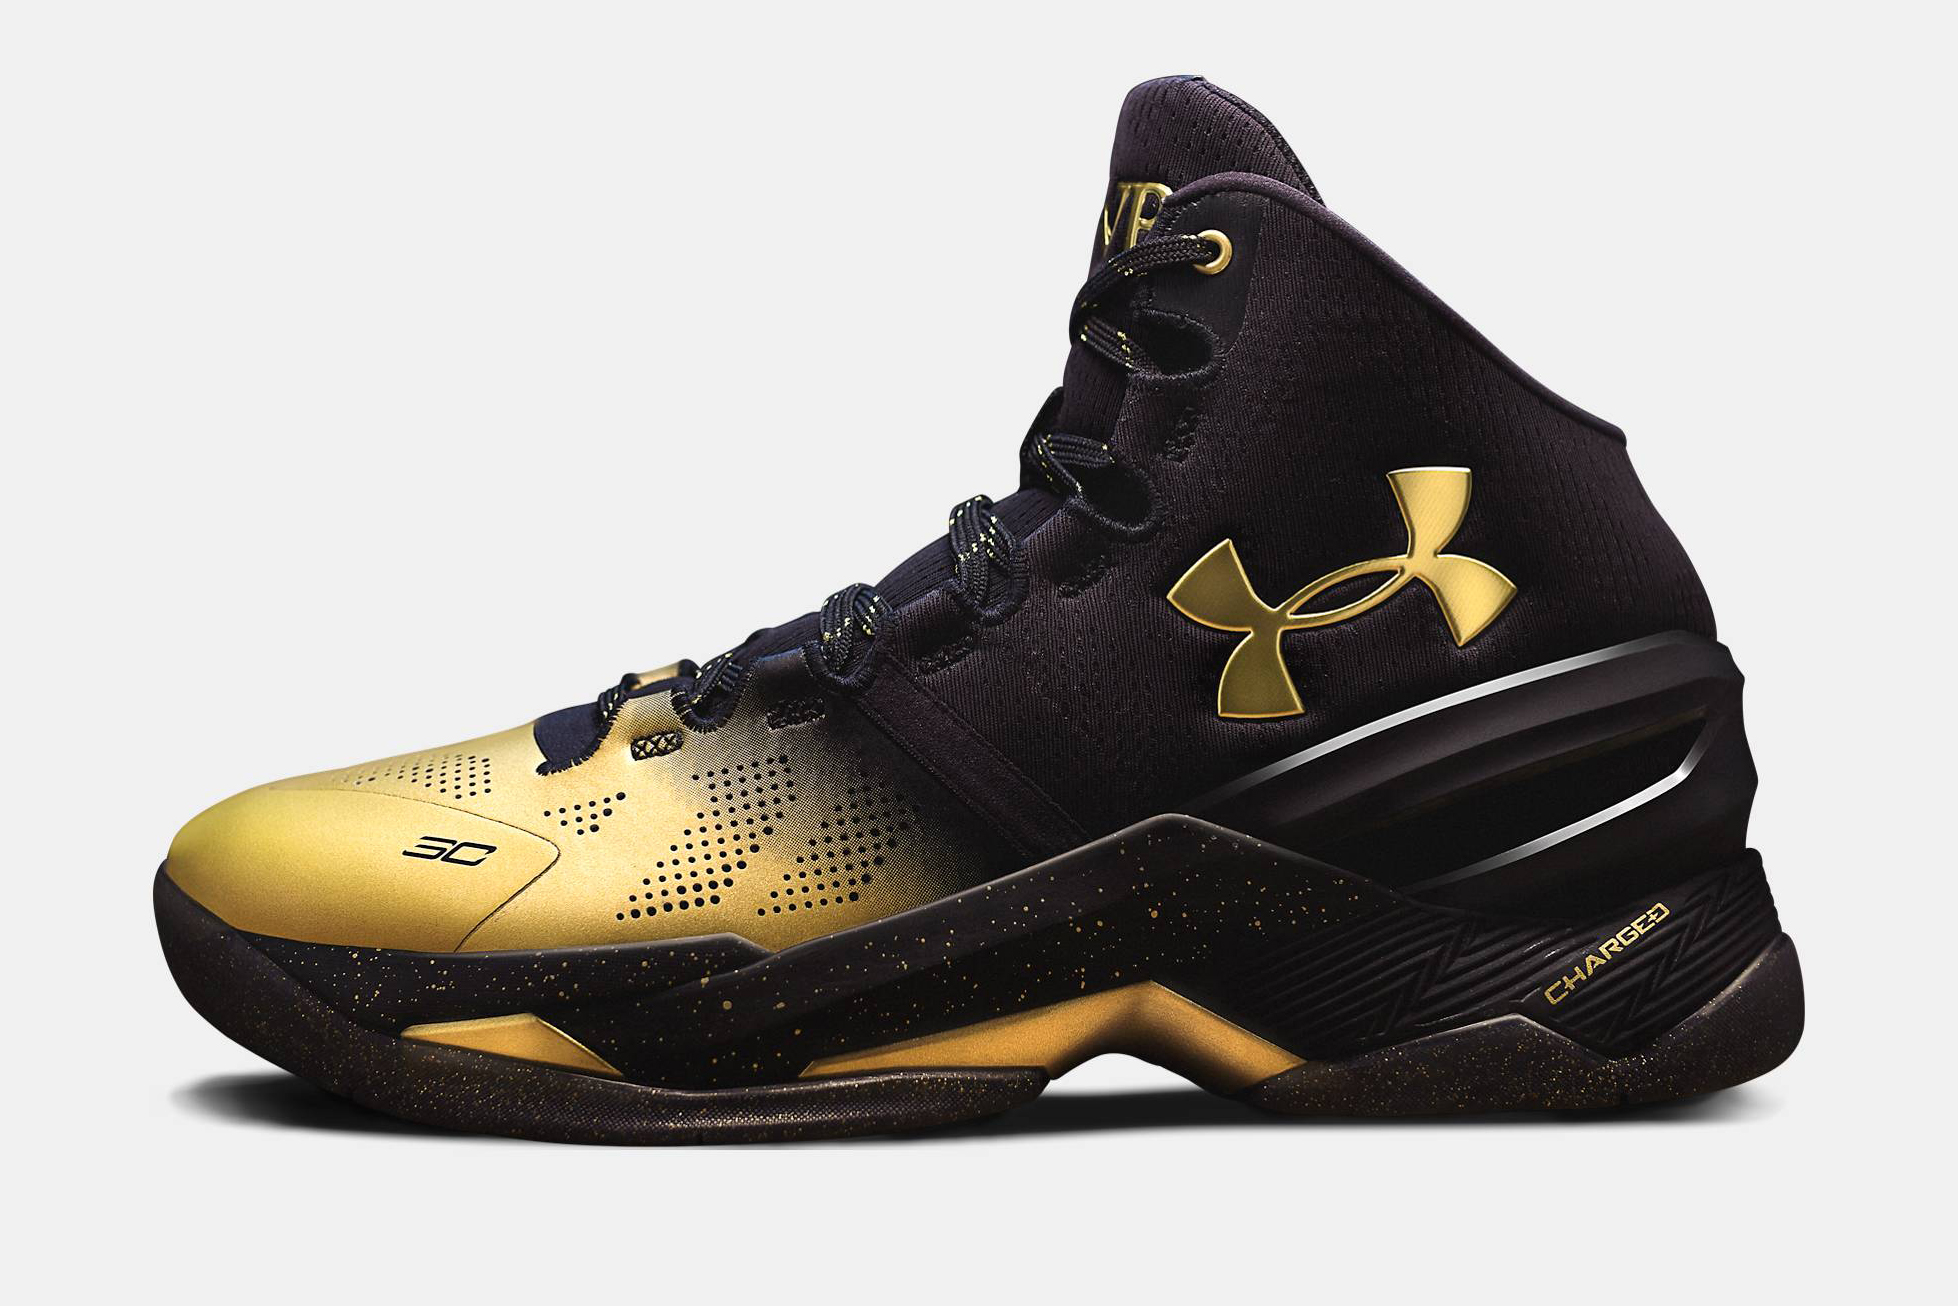 38b046351738 stephen curry shoes 3 46 men cheap   OFF44% The Largest Catalog ...